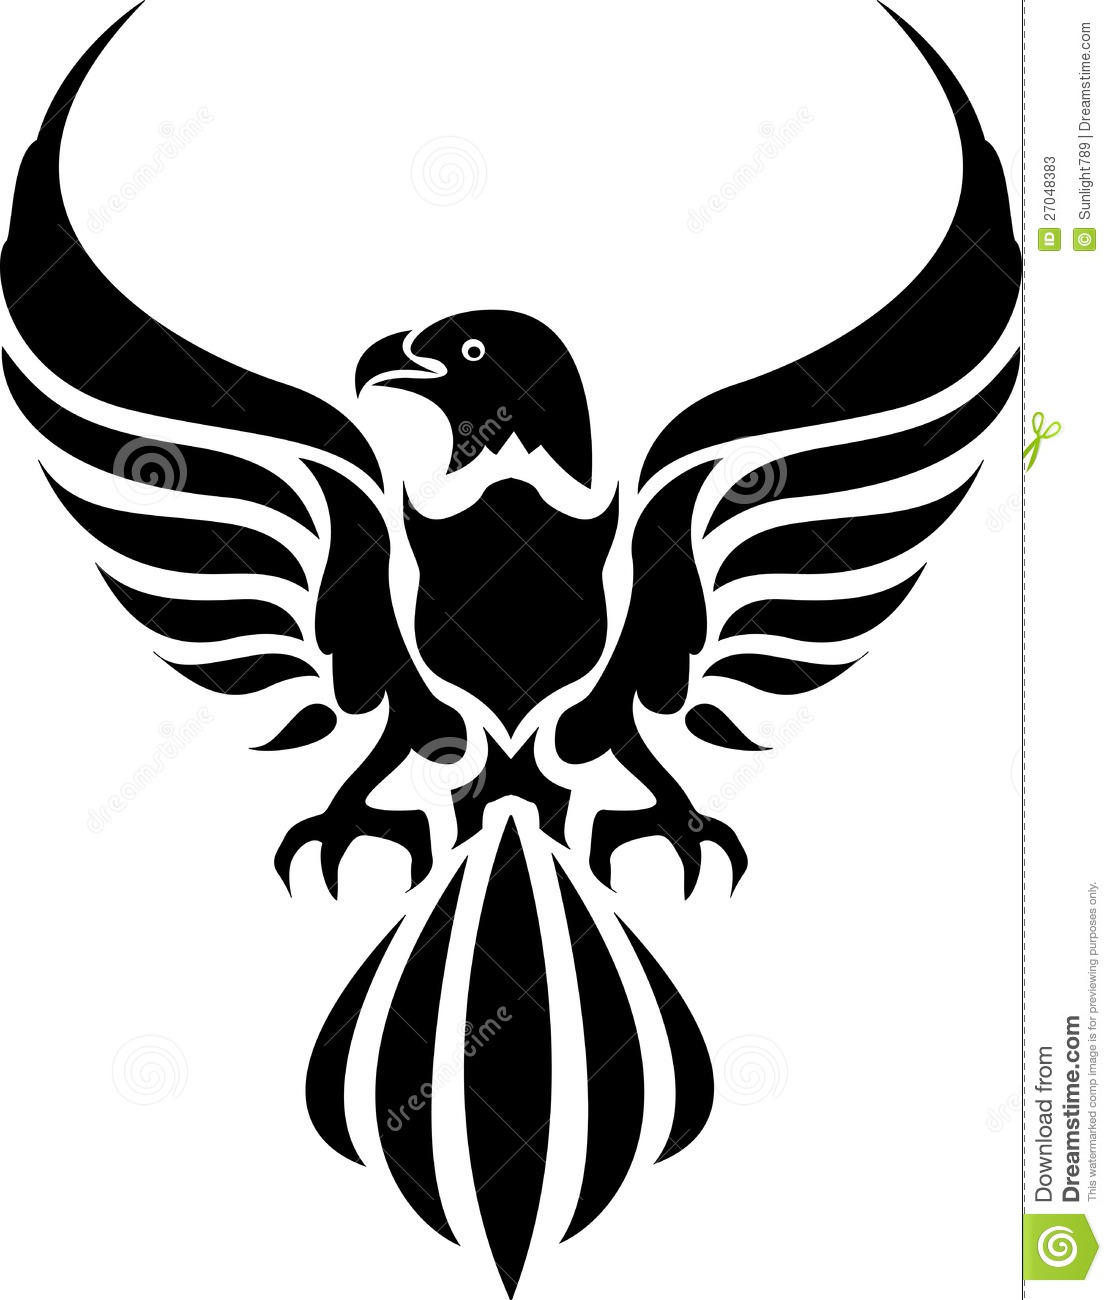 eagle tattoo stock illustration illustration of symbol 27048383. Black Bedroom Furniture Sets. Home Design Ideas